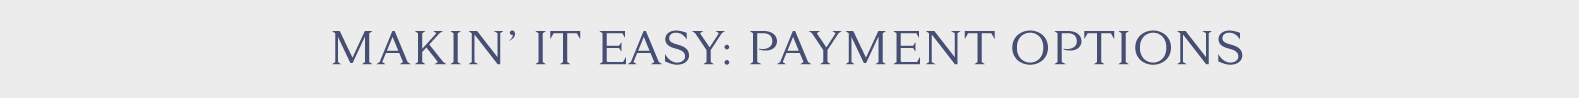 payment-options.png